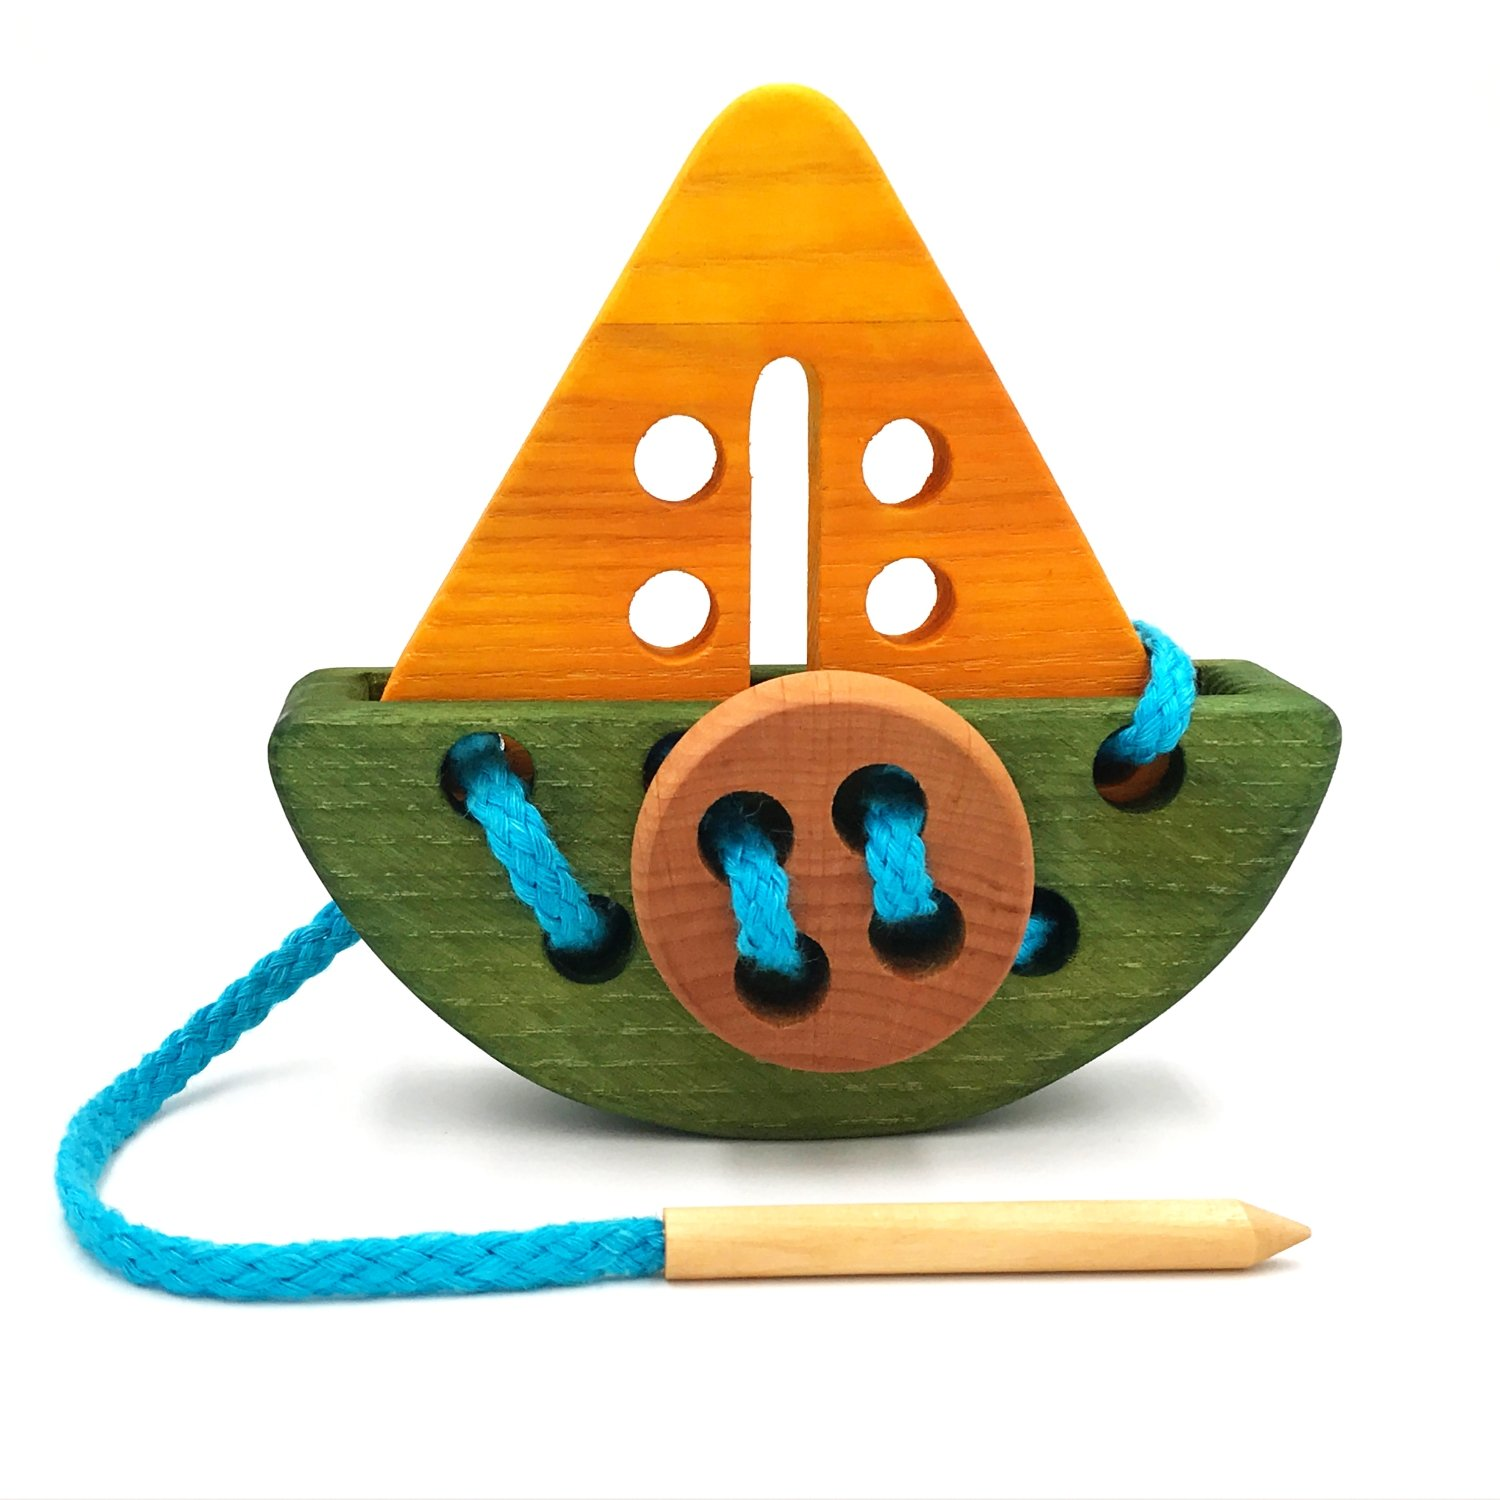 Pawoo Toys Montessori Wooden Lacing Ship Boat Toy Educational Game and Great Addition to a Car or Plane Toy Box for Travel with Kids Toddler